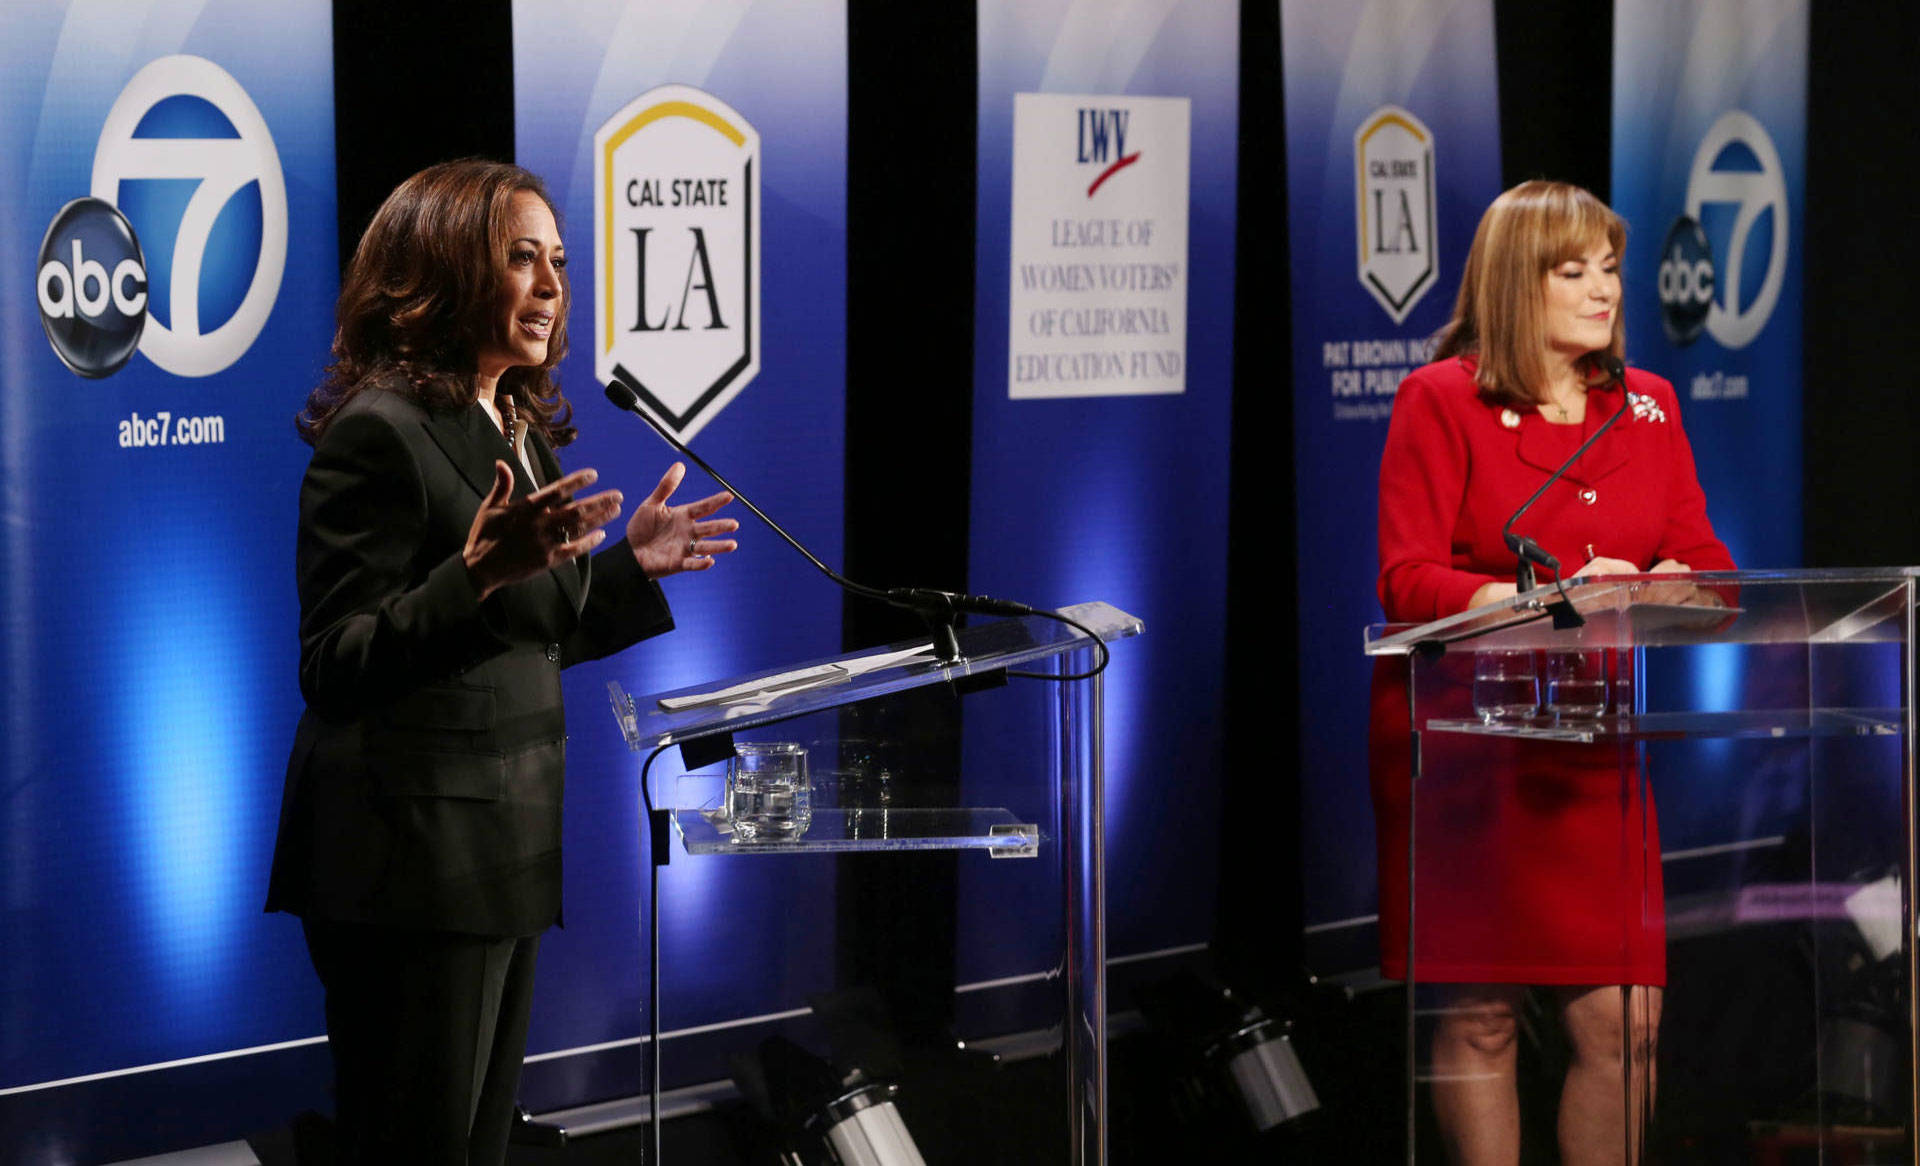 California Attorney General Kamala Harris (L) and Orange County Rep. Loretta Sanchez debate at Cal State L.A. on Oct. 5, 2016.  Courtesy Cal State L.A.